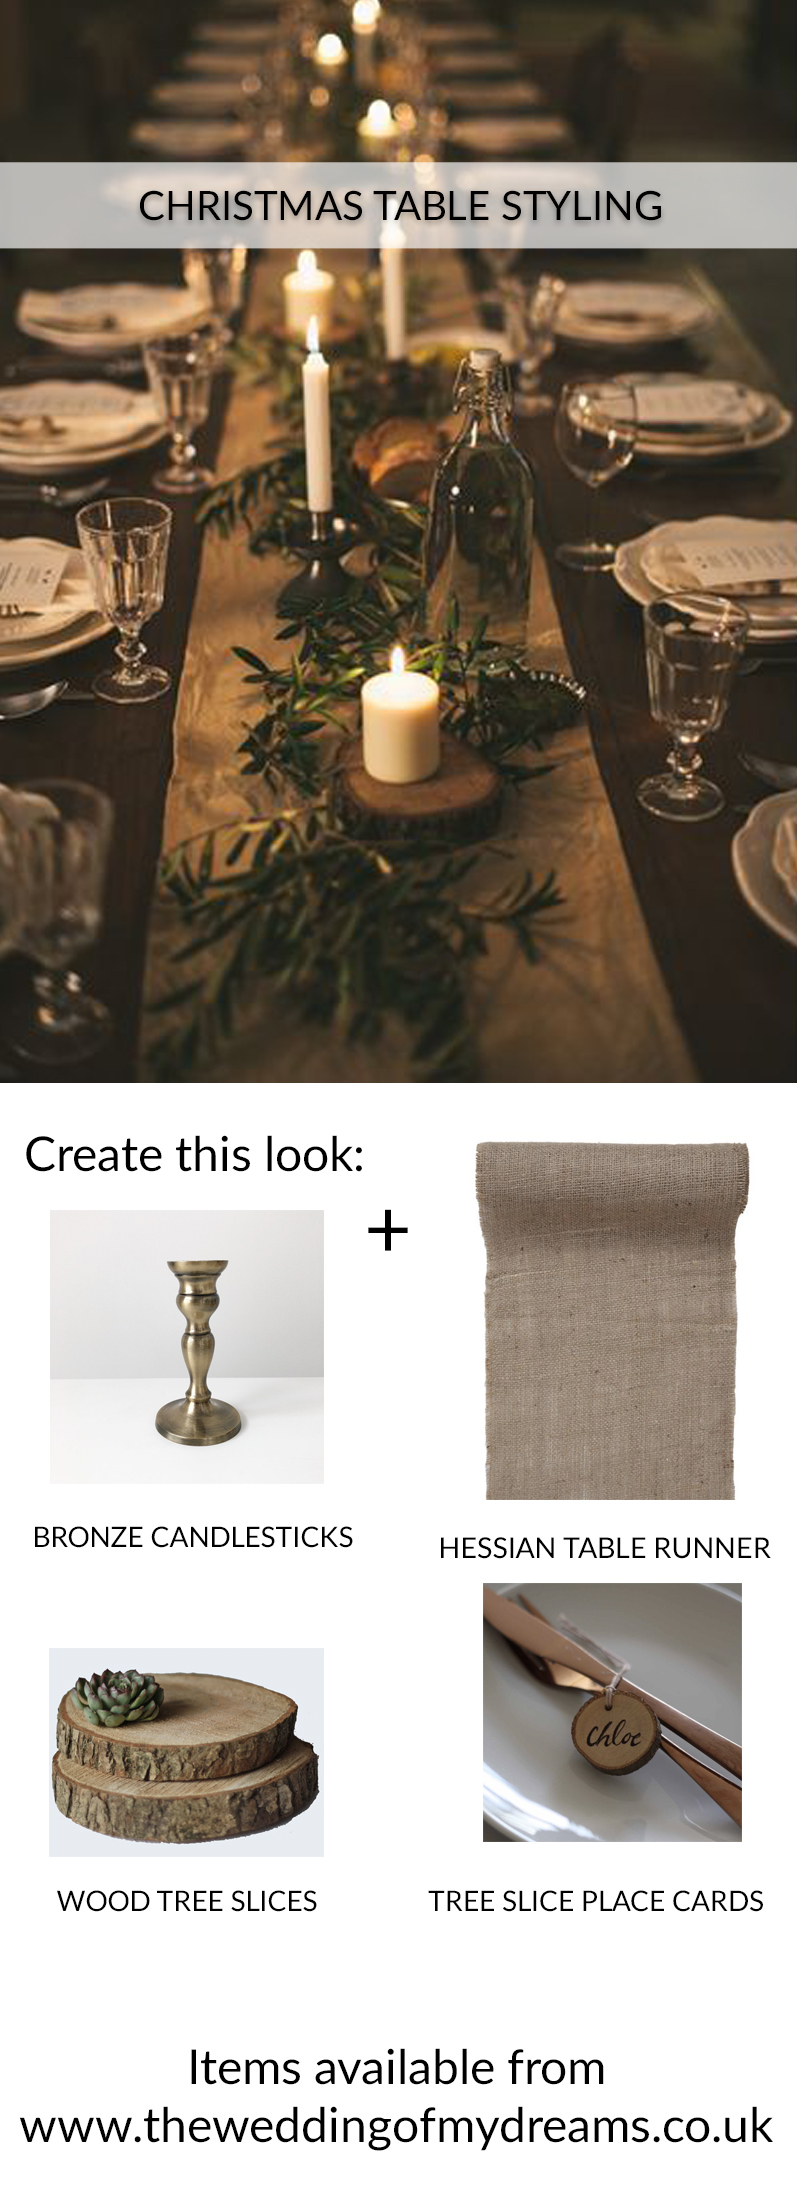 CHRISTMAS TABLE STYLING IDEAS RUSTIC BRONZE GOLD